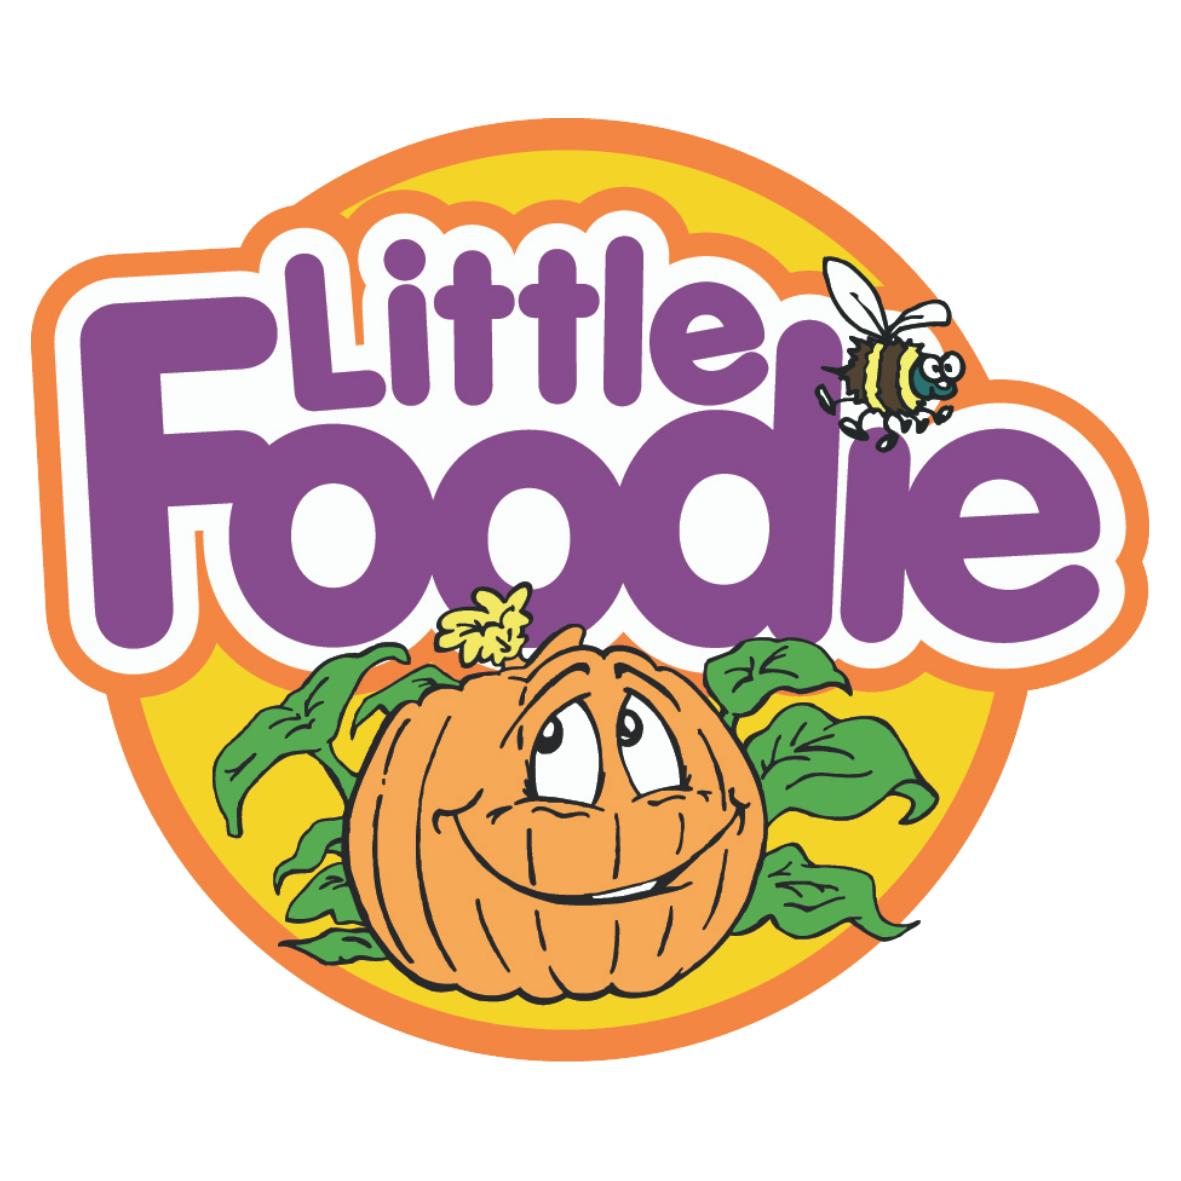 Logo of the Little Foodies Club